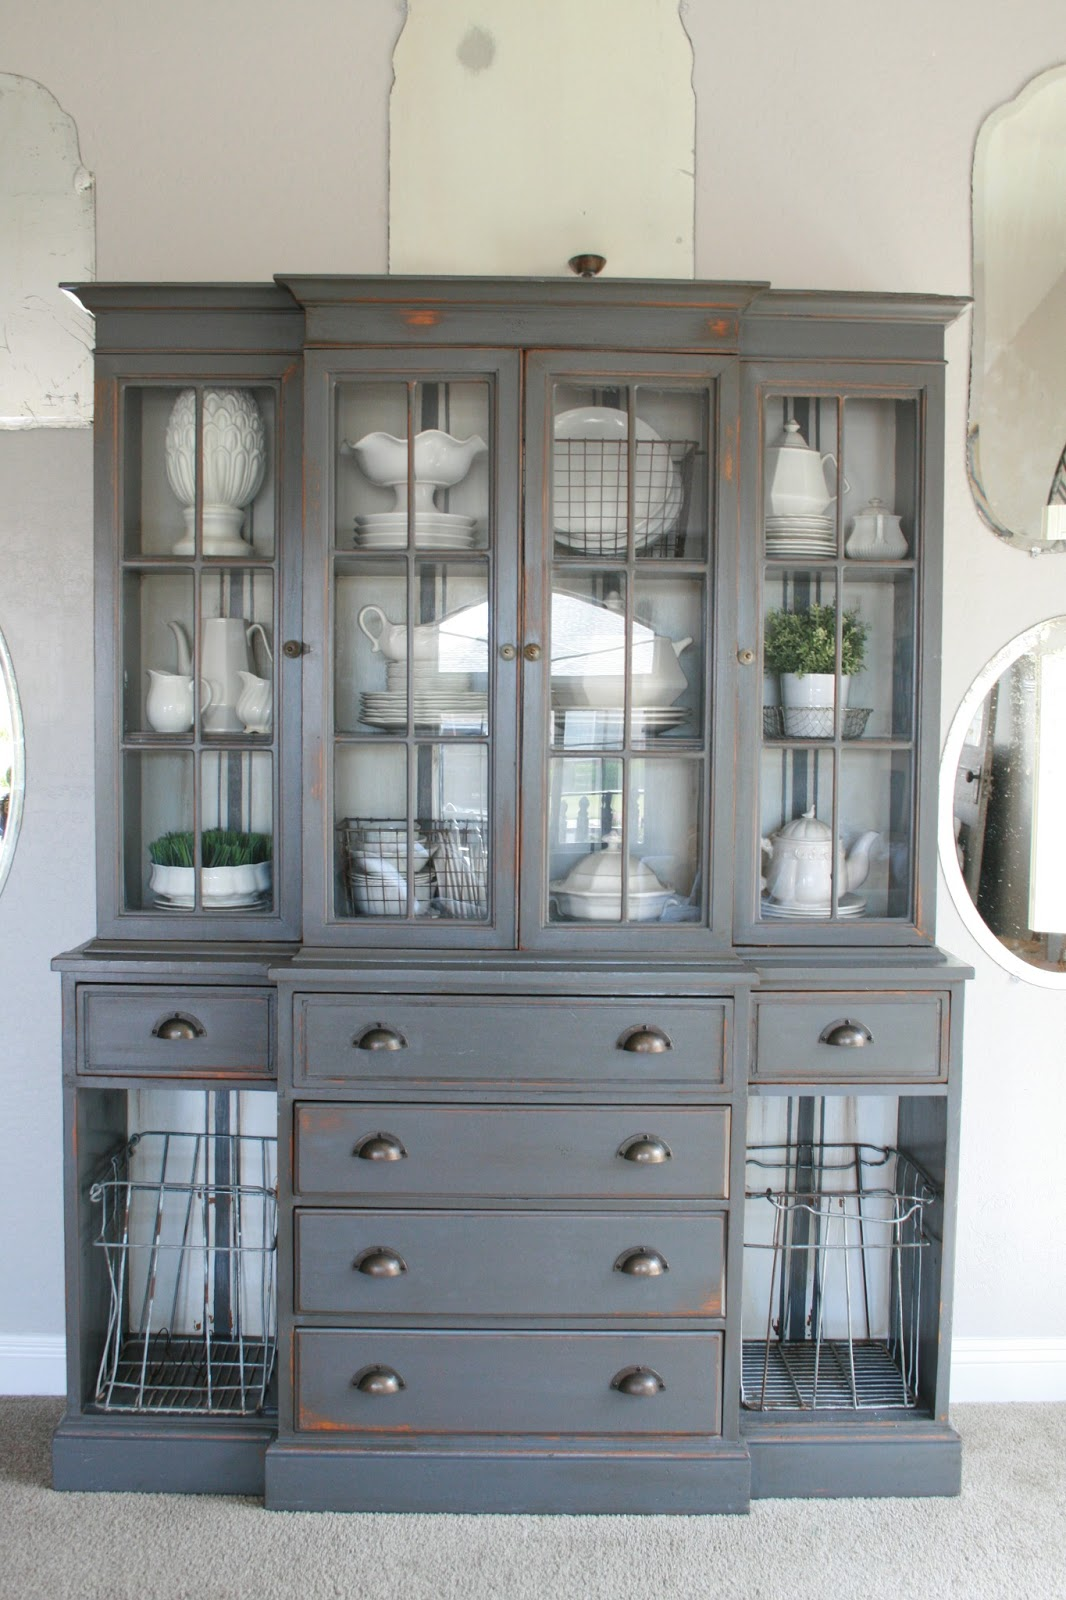 Grand design grain sack stripe inspired hutch for Hutch decor